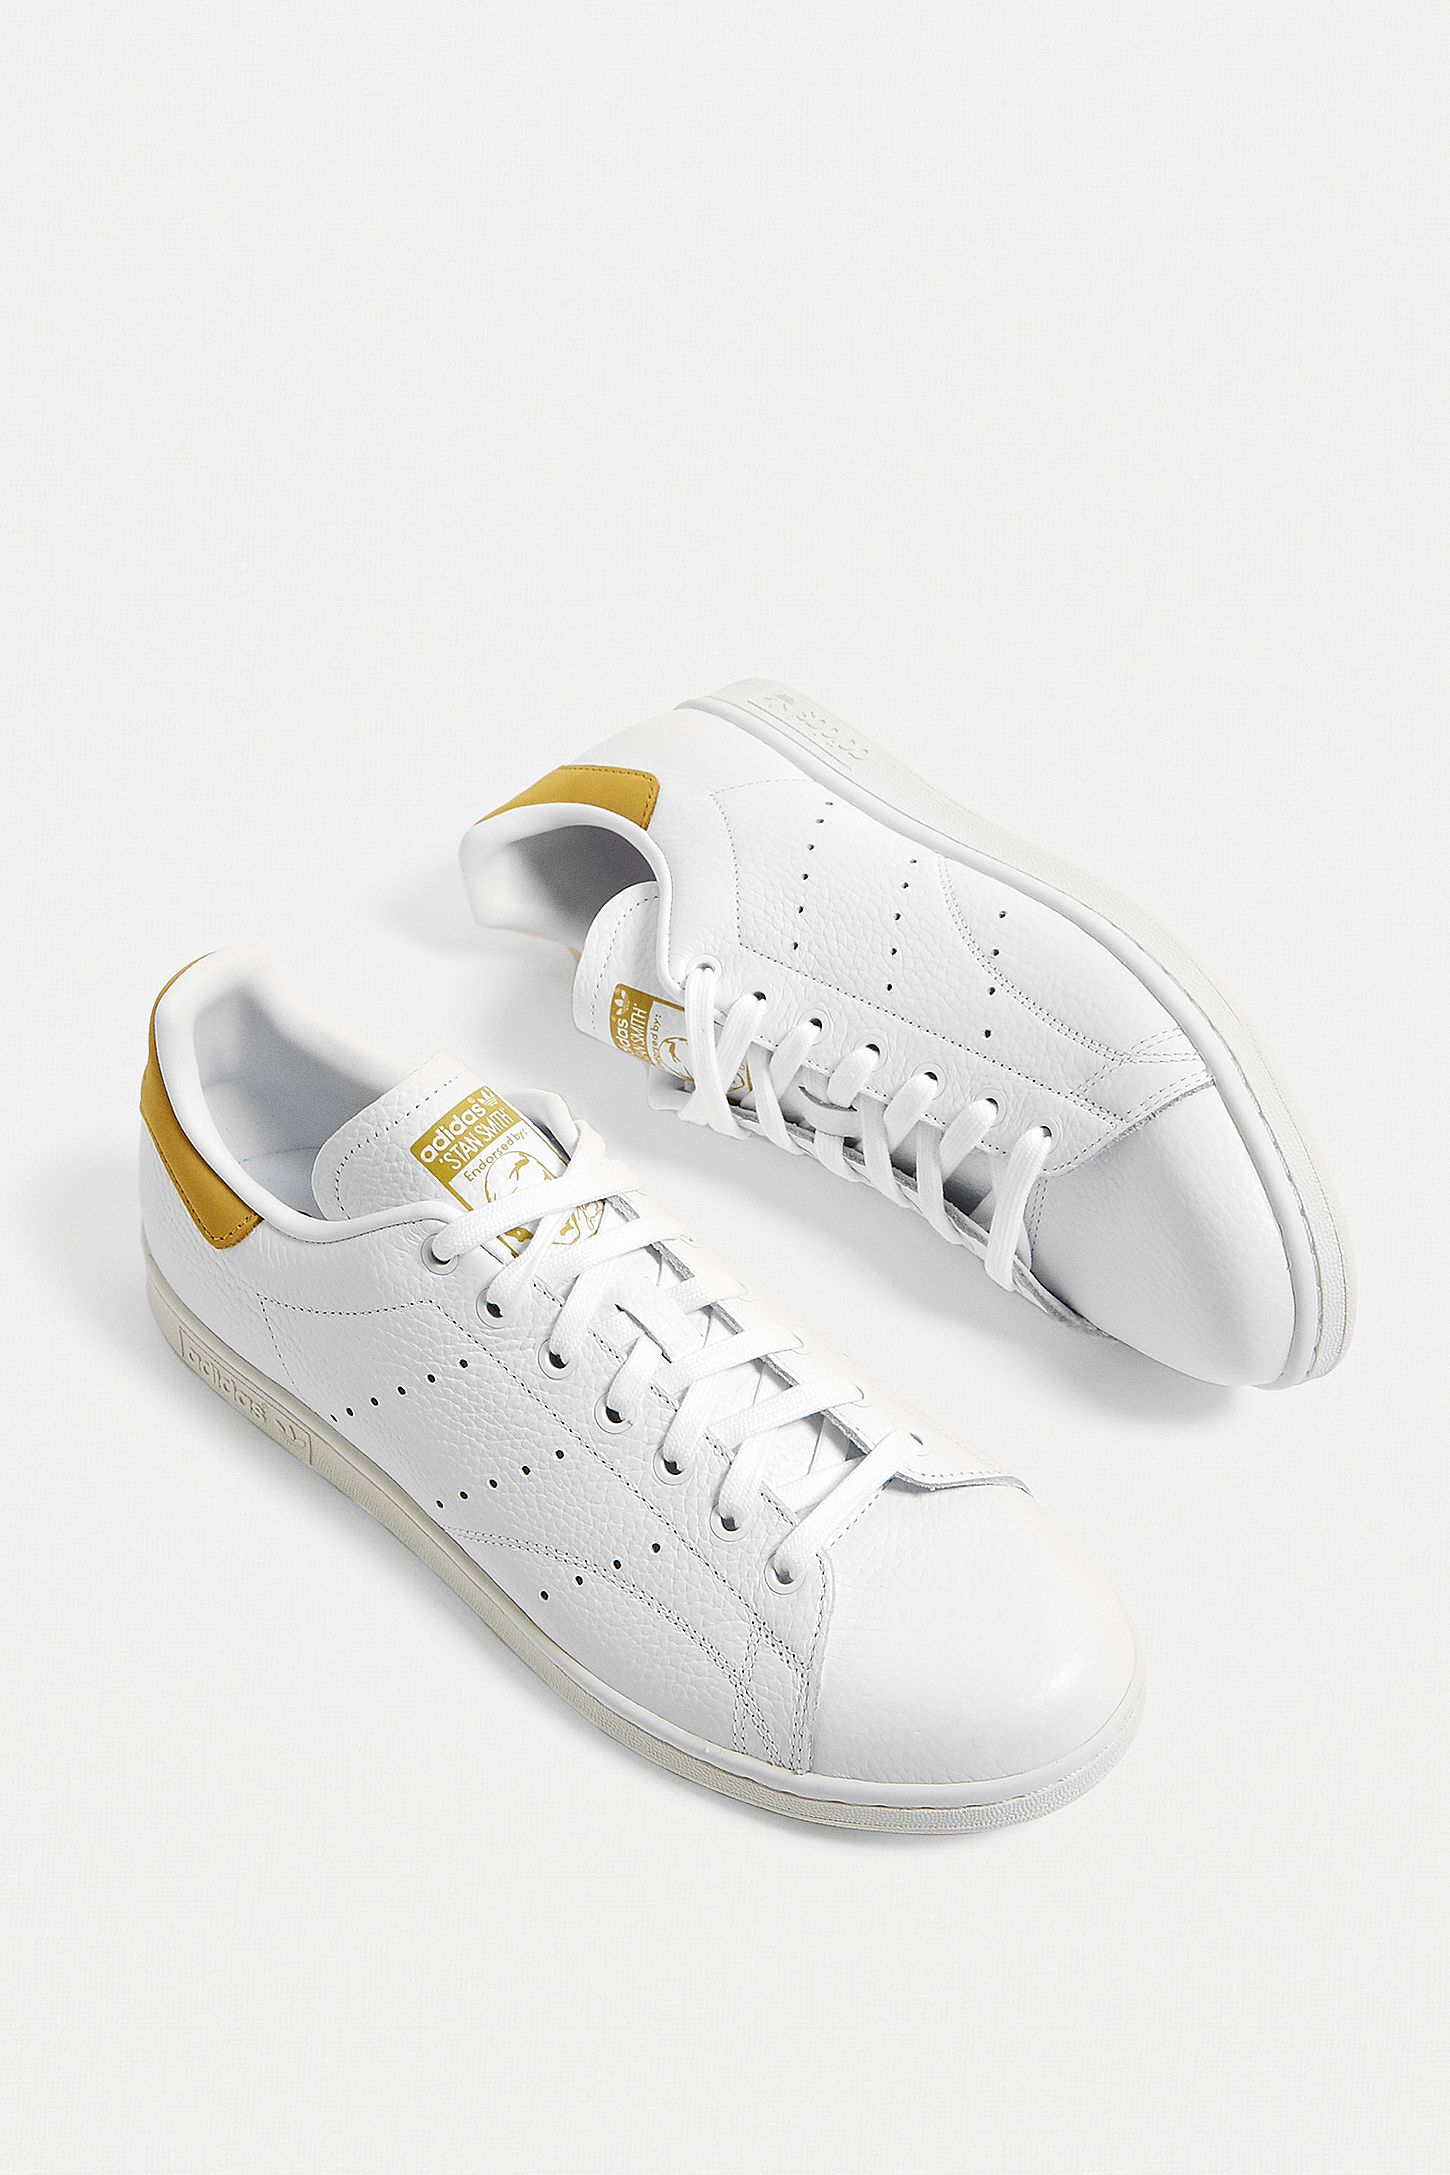 meilleur service 35b66 9366b adidas Stan Smith White and Yellow Trainers